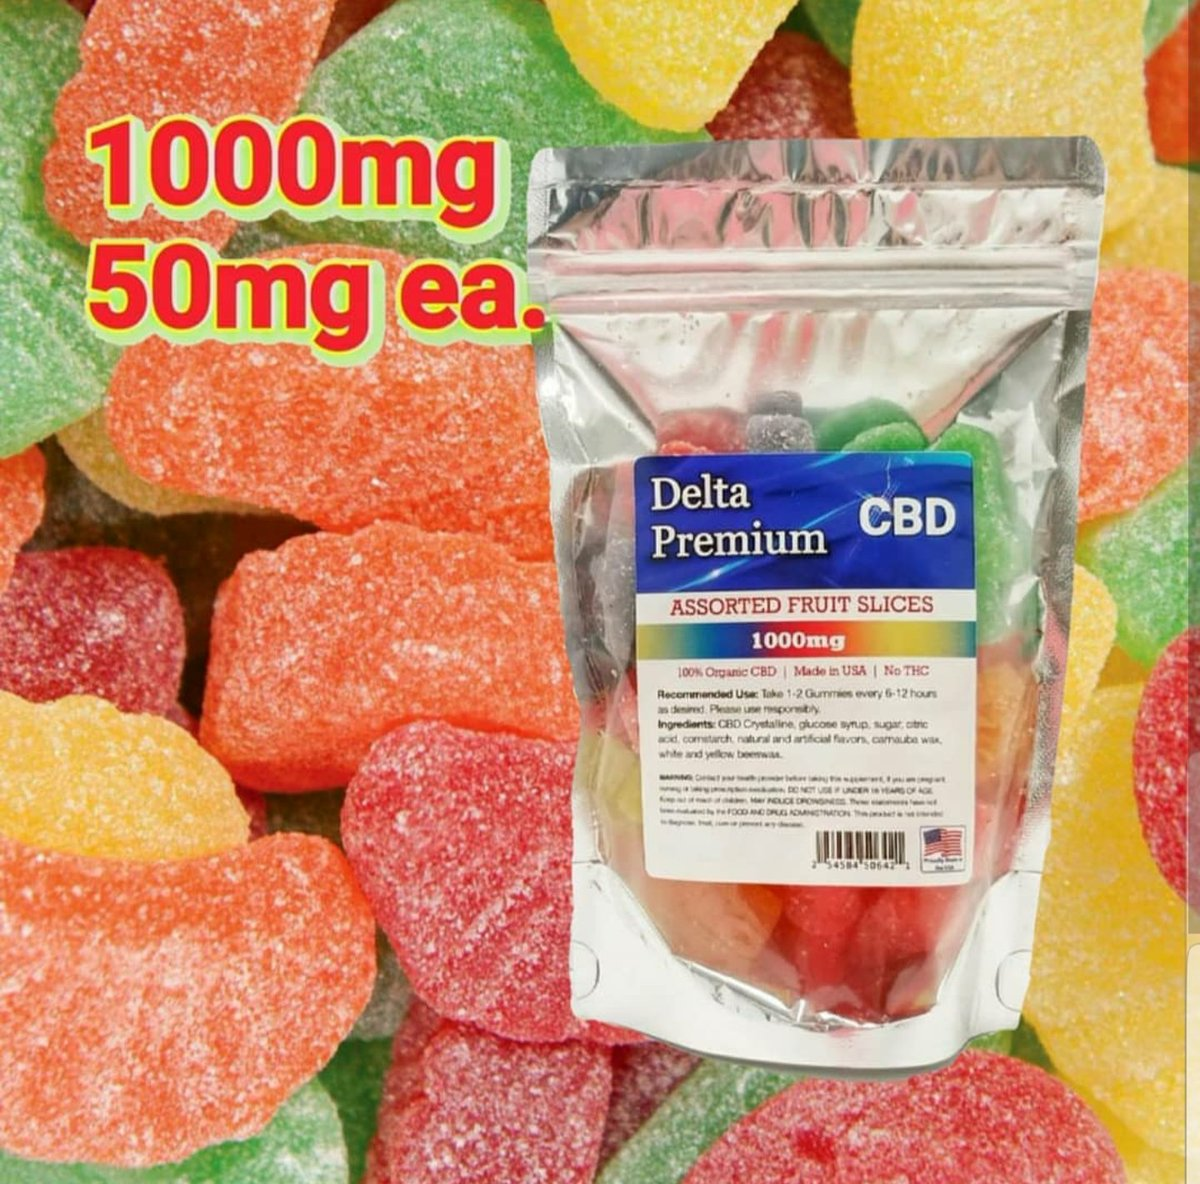 Have you checked out our CBD gummies? They're great to keep on hand for through out the day relief!  #CBD #CBDredlands #redlands #inlandempire #cbdoil #cbdproducts #1cbdintheie #deltapremiumCBD #rollon #cbdtopical #cbdedibles #PTSD #Anxiety #Arthritis #PainReliefpic.twitter.com/qAGjaF1Tw2